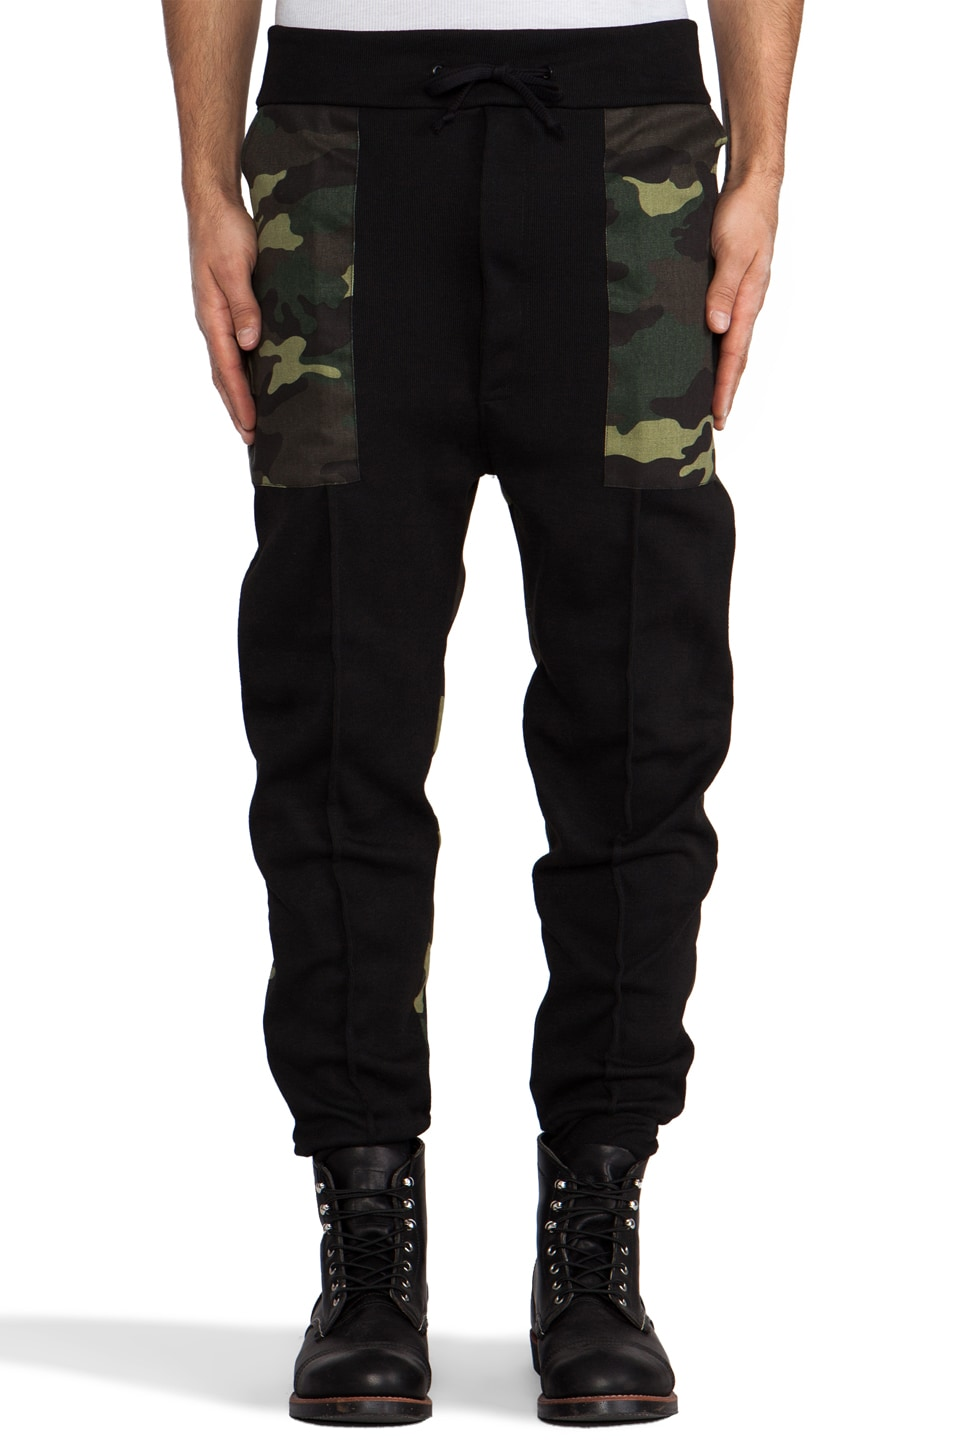 B:Scott Drop Crotch Sweatpant in Black & Camo